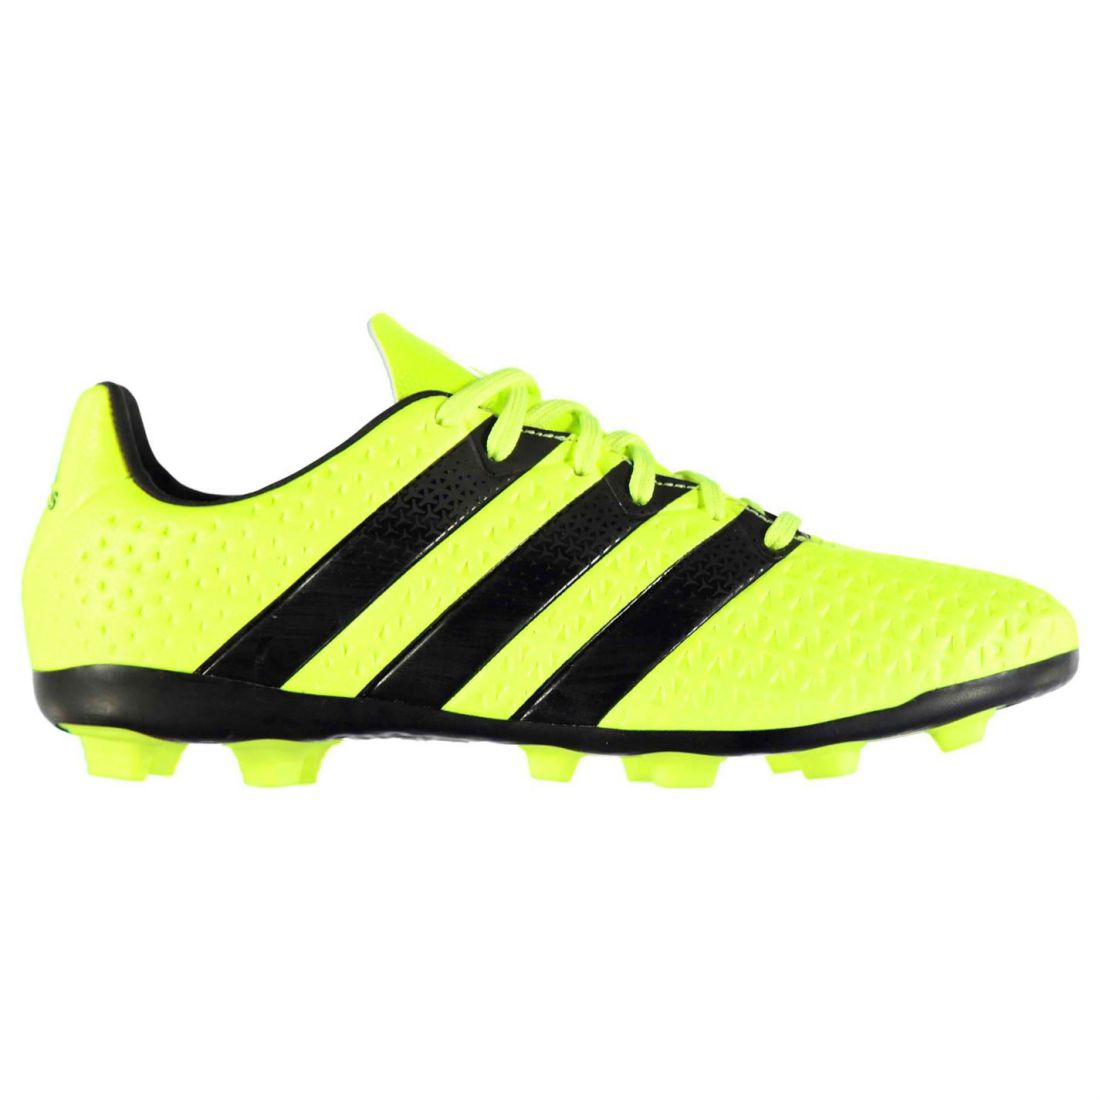 cef1281ffbad Details about adidas Kids Ace 16.4 FG Football Boots Junior Lace Up Shoes  Moulded Studs